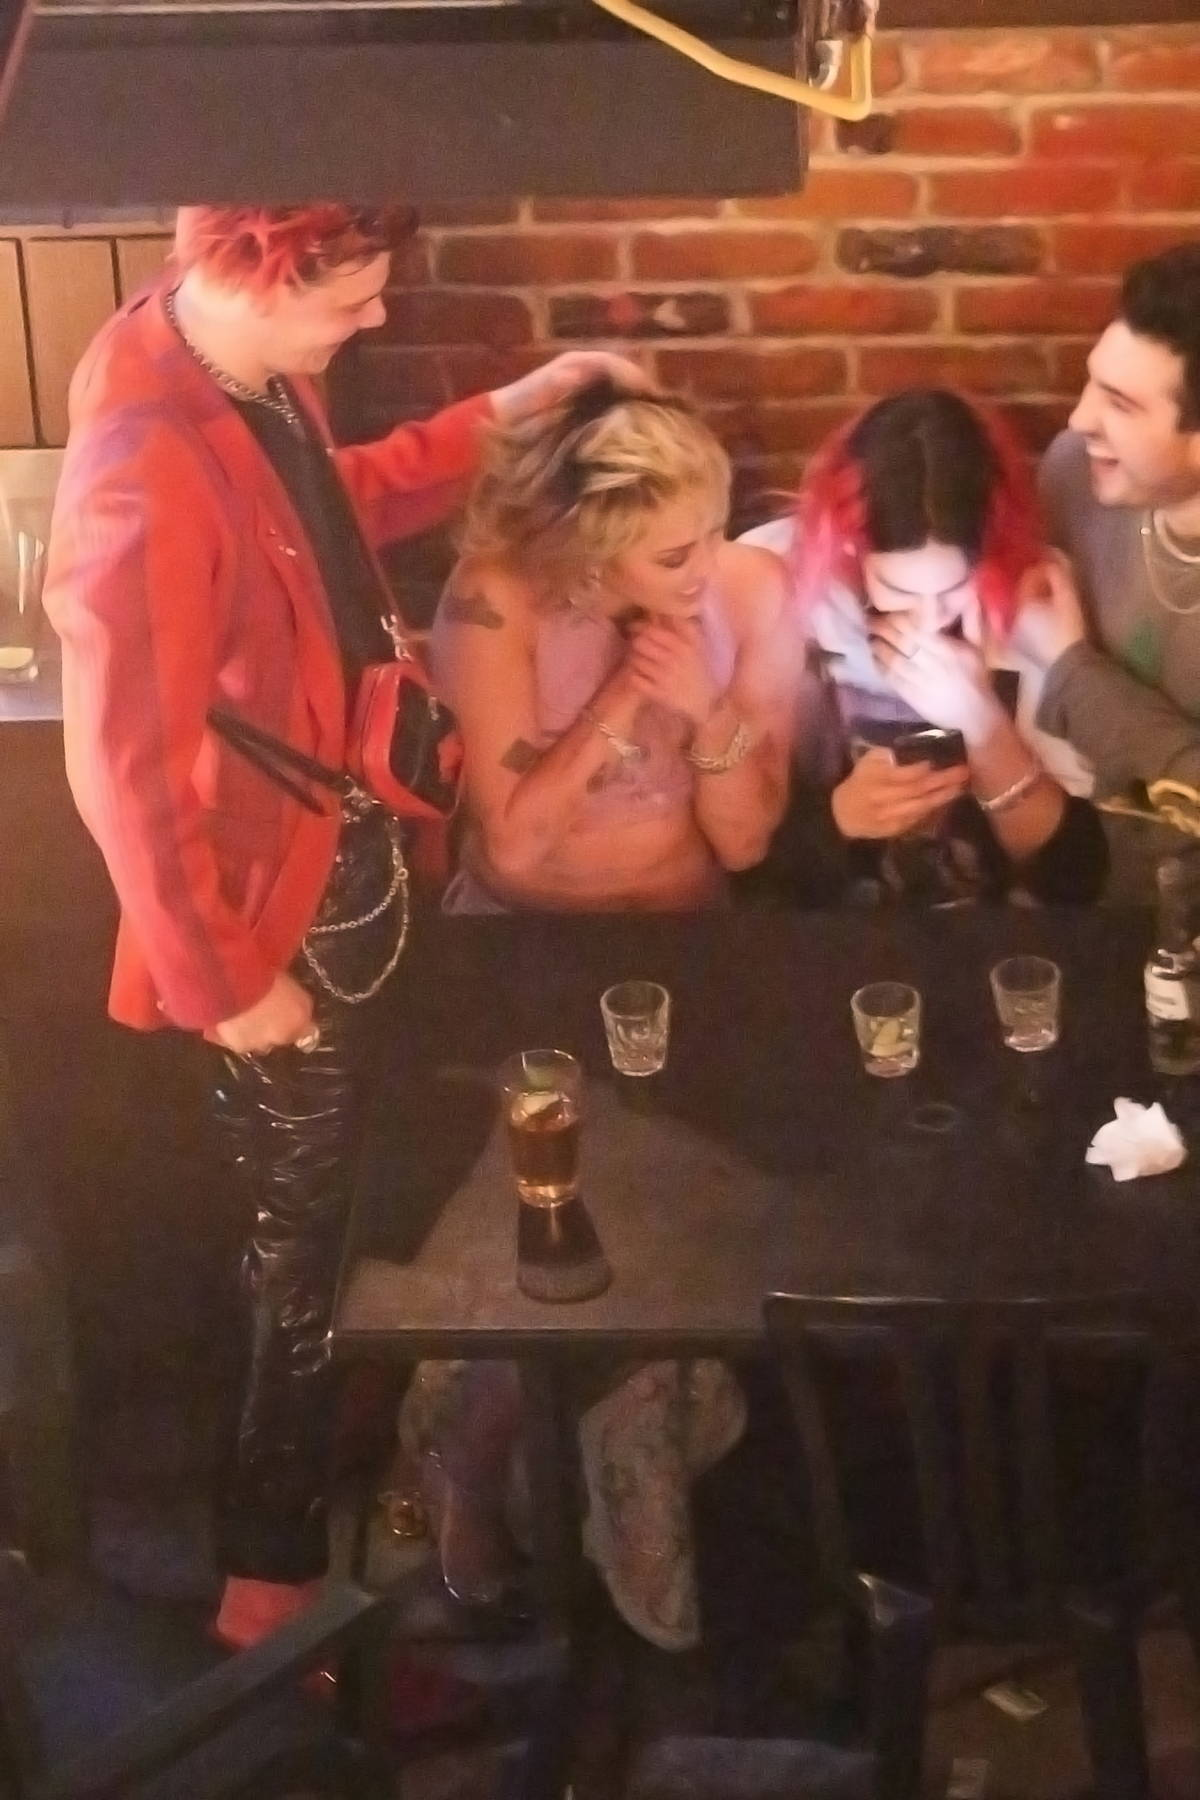 miley cyrus sparks dating rumors as she gets frisky with yungblud while out  with friends at rainbow room in los angeles-250321_1